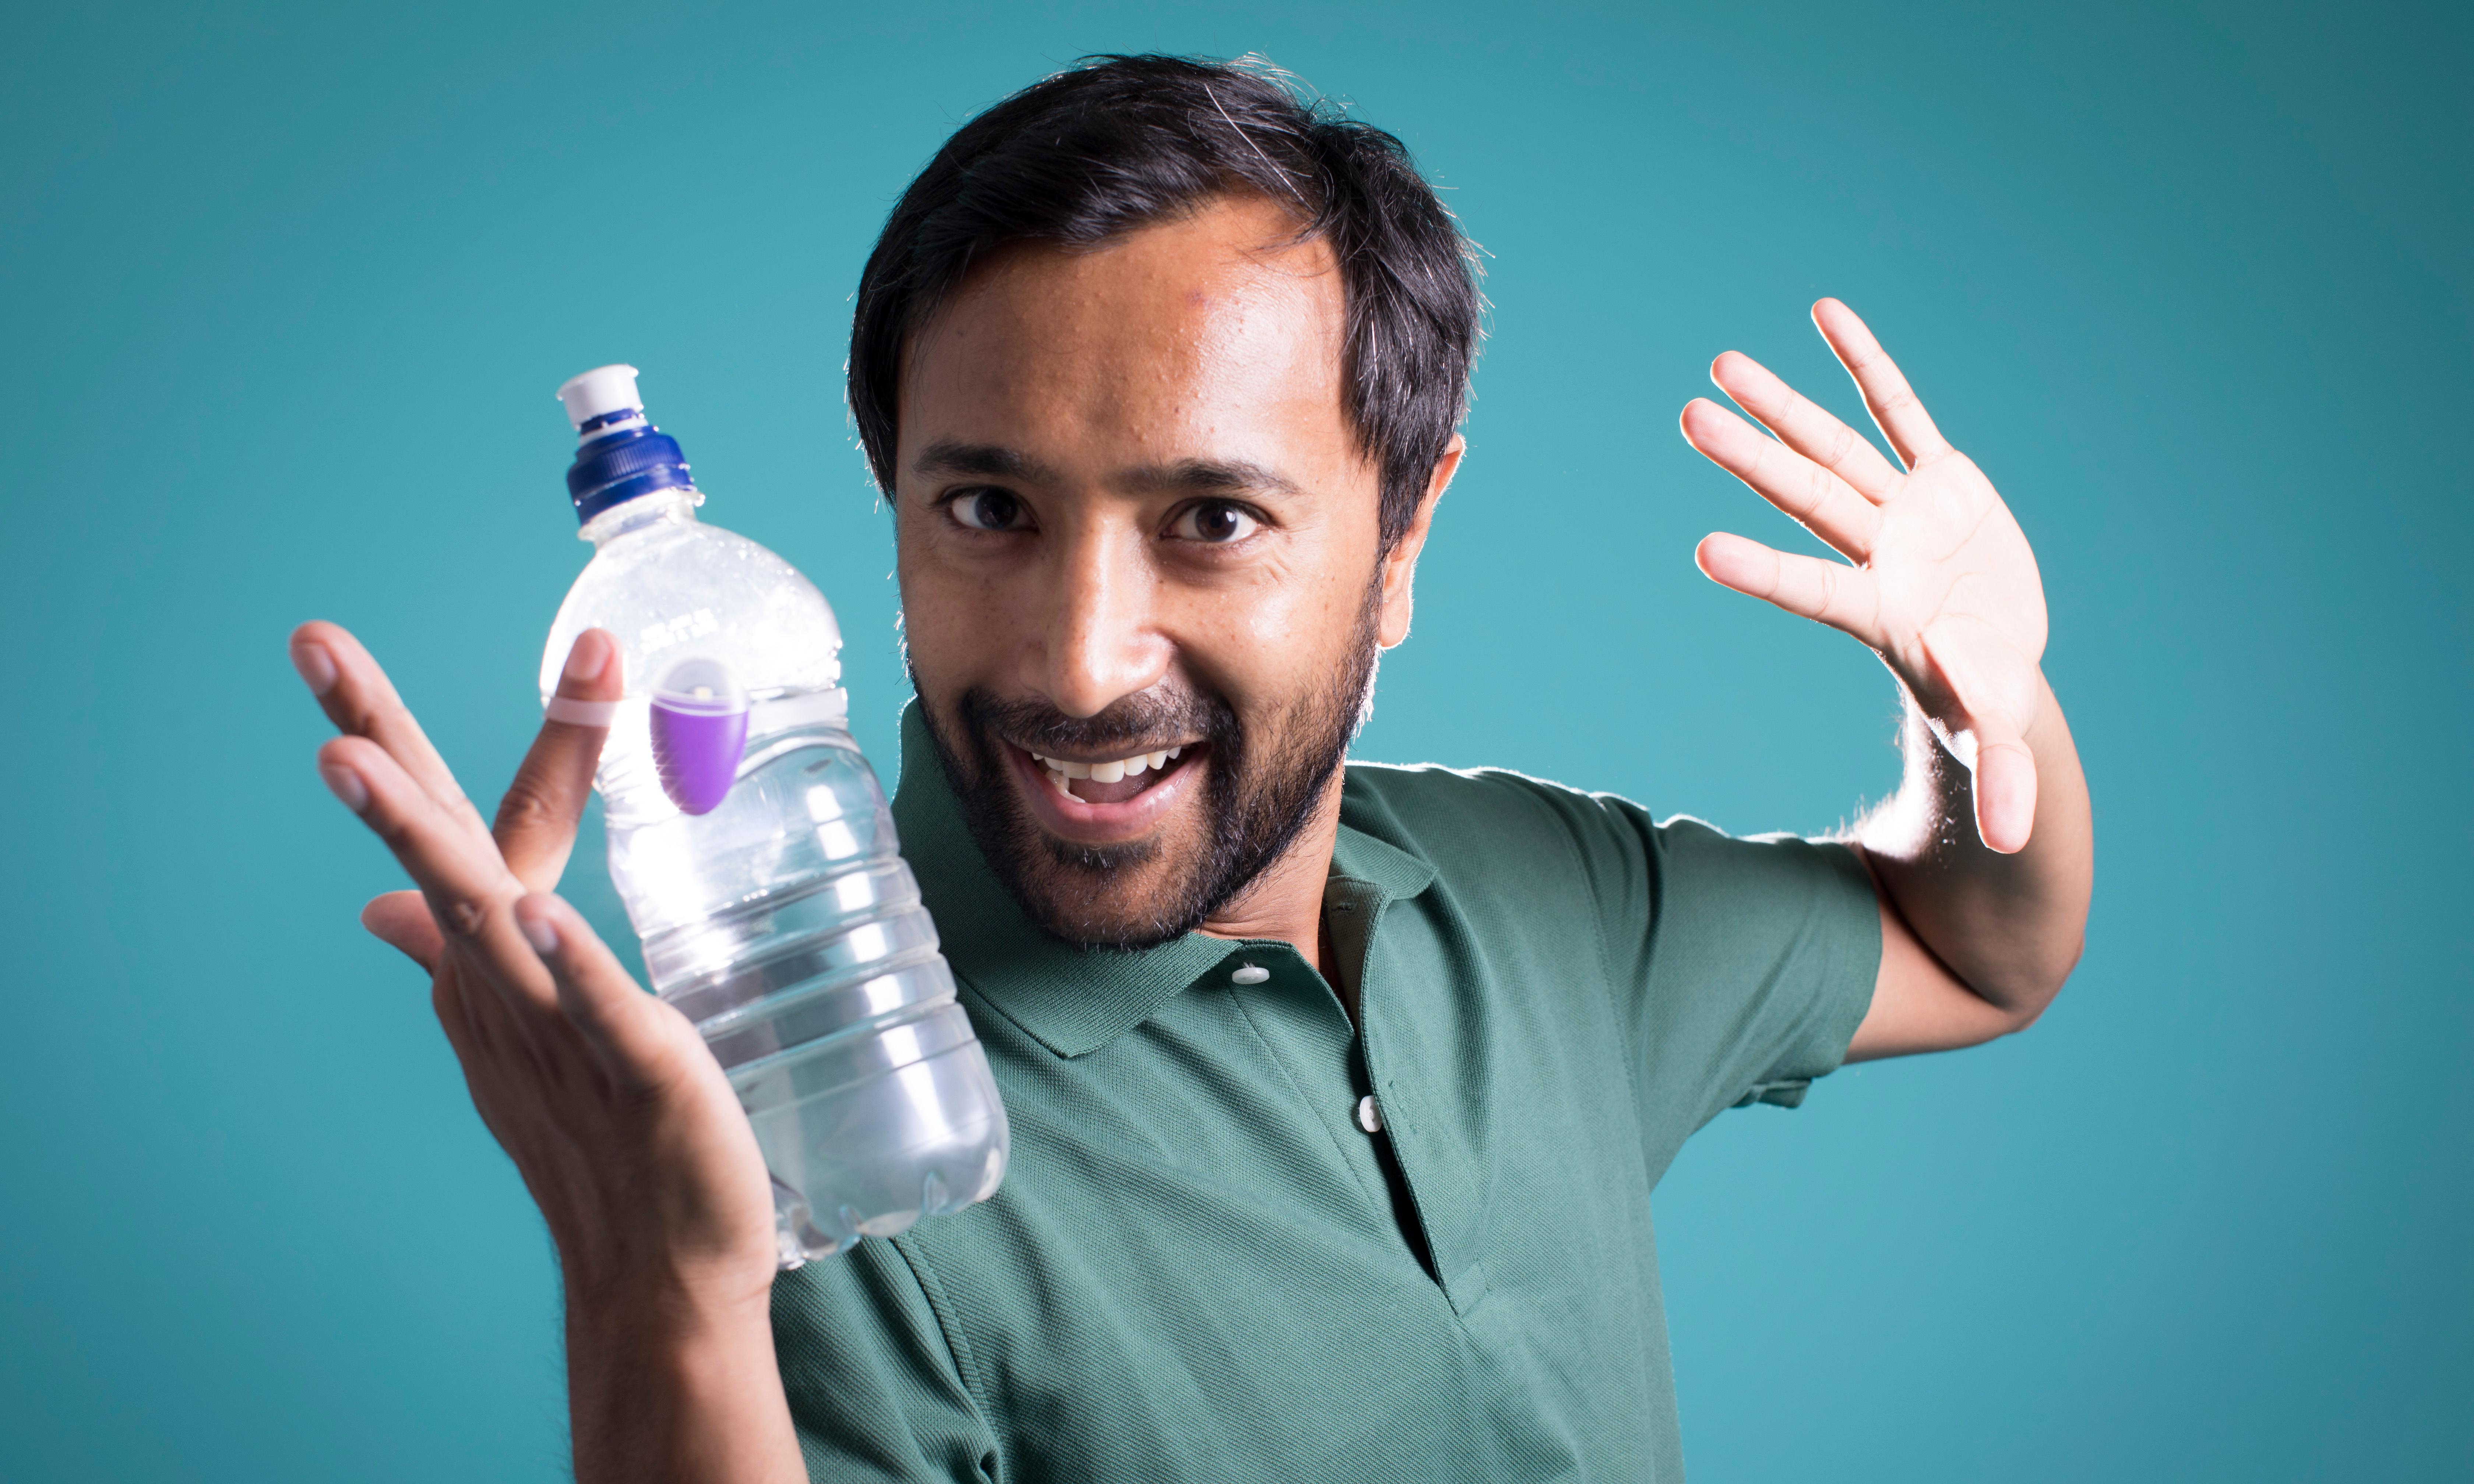 Ulla smart hydration reminder – can a blinking device make me drink more water?